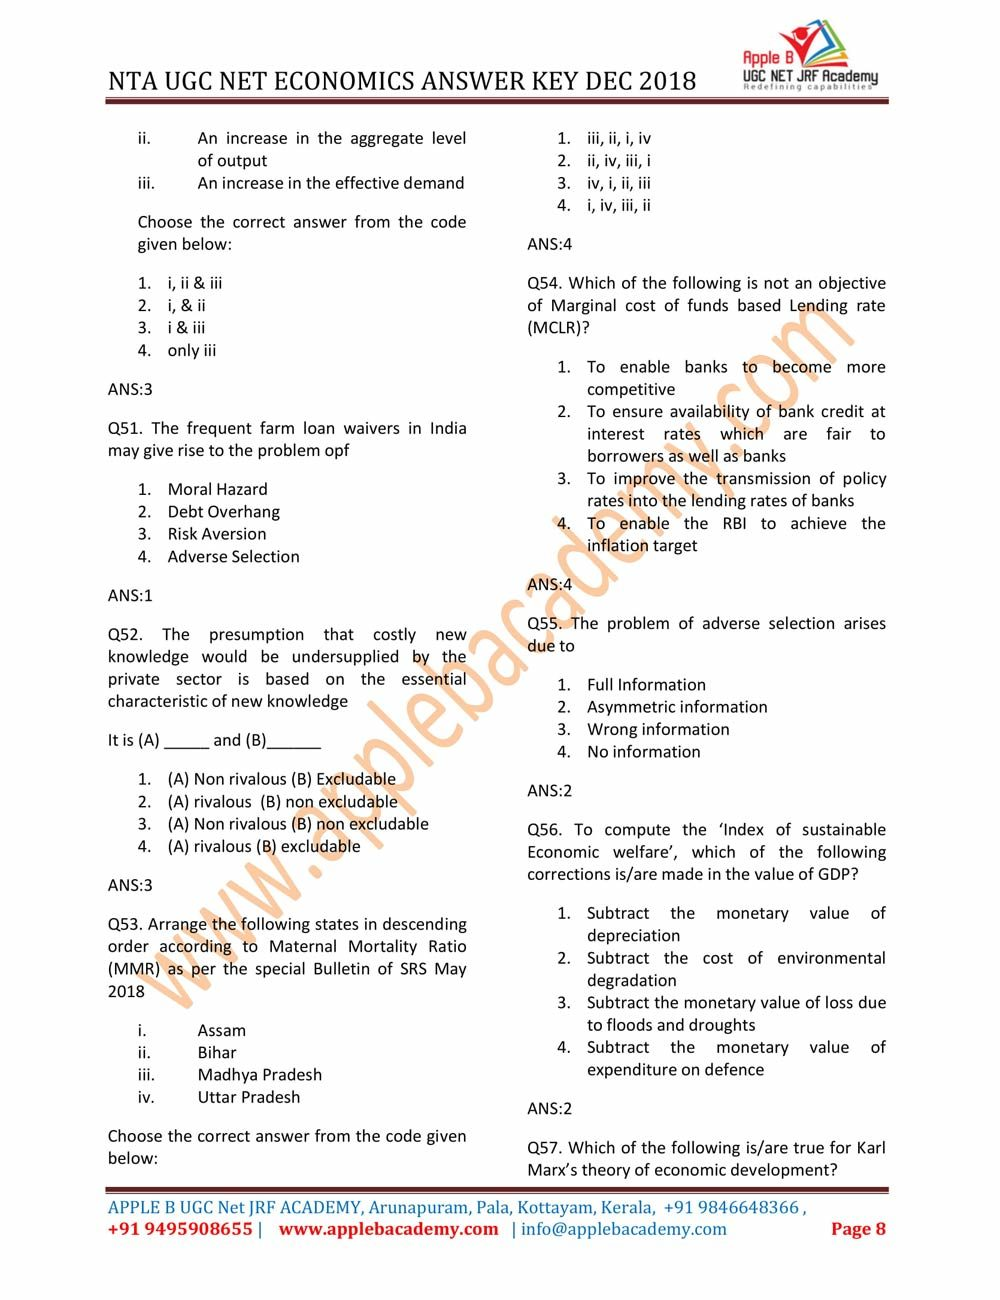 UGC-NET-ECONOMICS-ANSWER-KEY-DECEMBER-2018-(8)